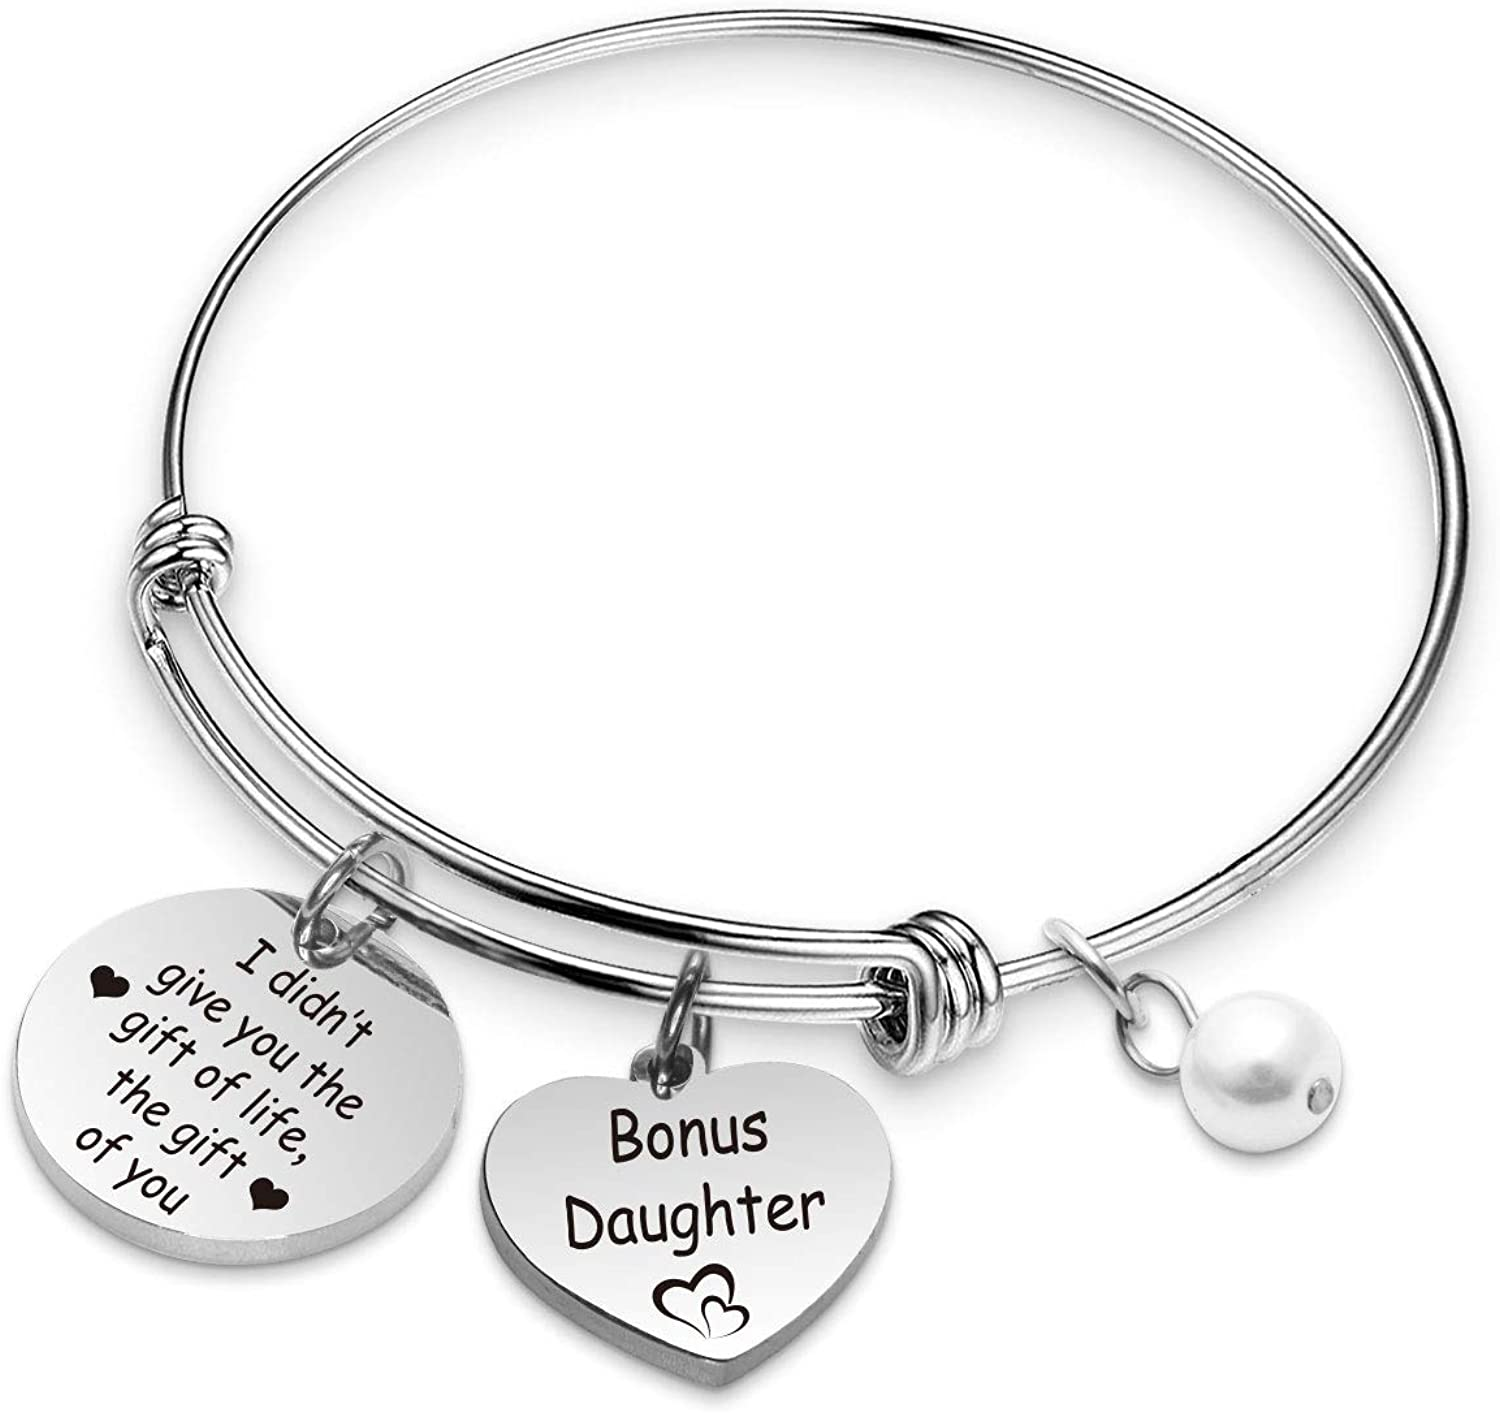 WENATA Daughter in Law Bracelet Stepdaughter Gift I Didn't Give You The Gift of Life The Gift of You Bonus Daughter Jewelry Gift